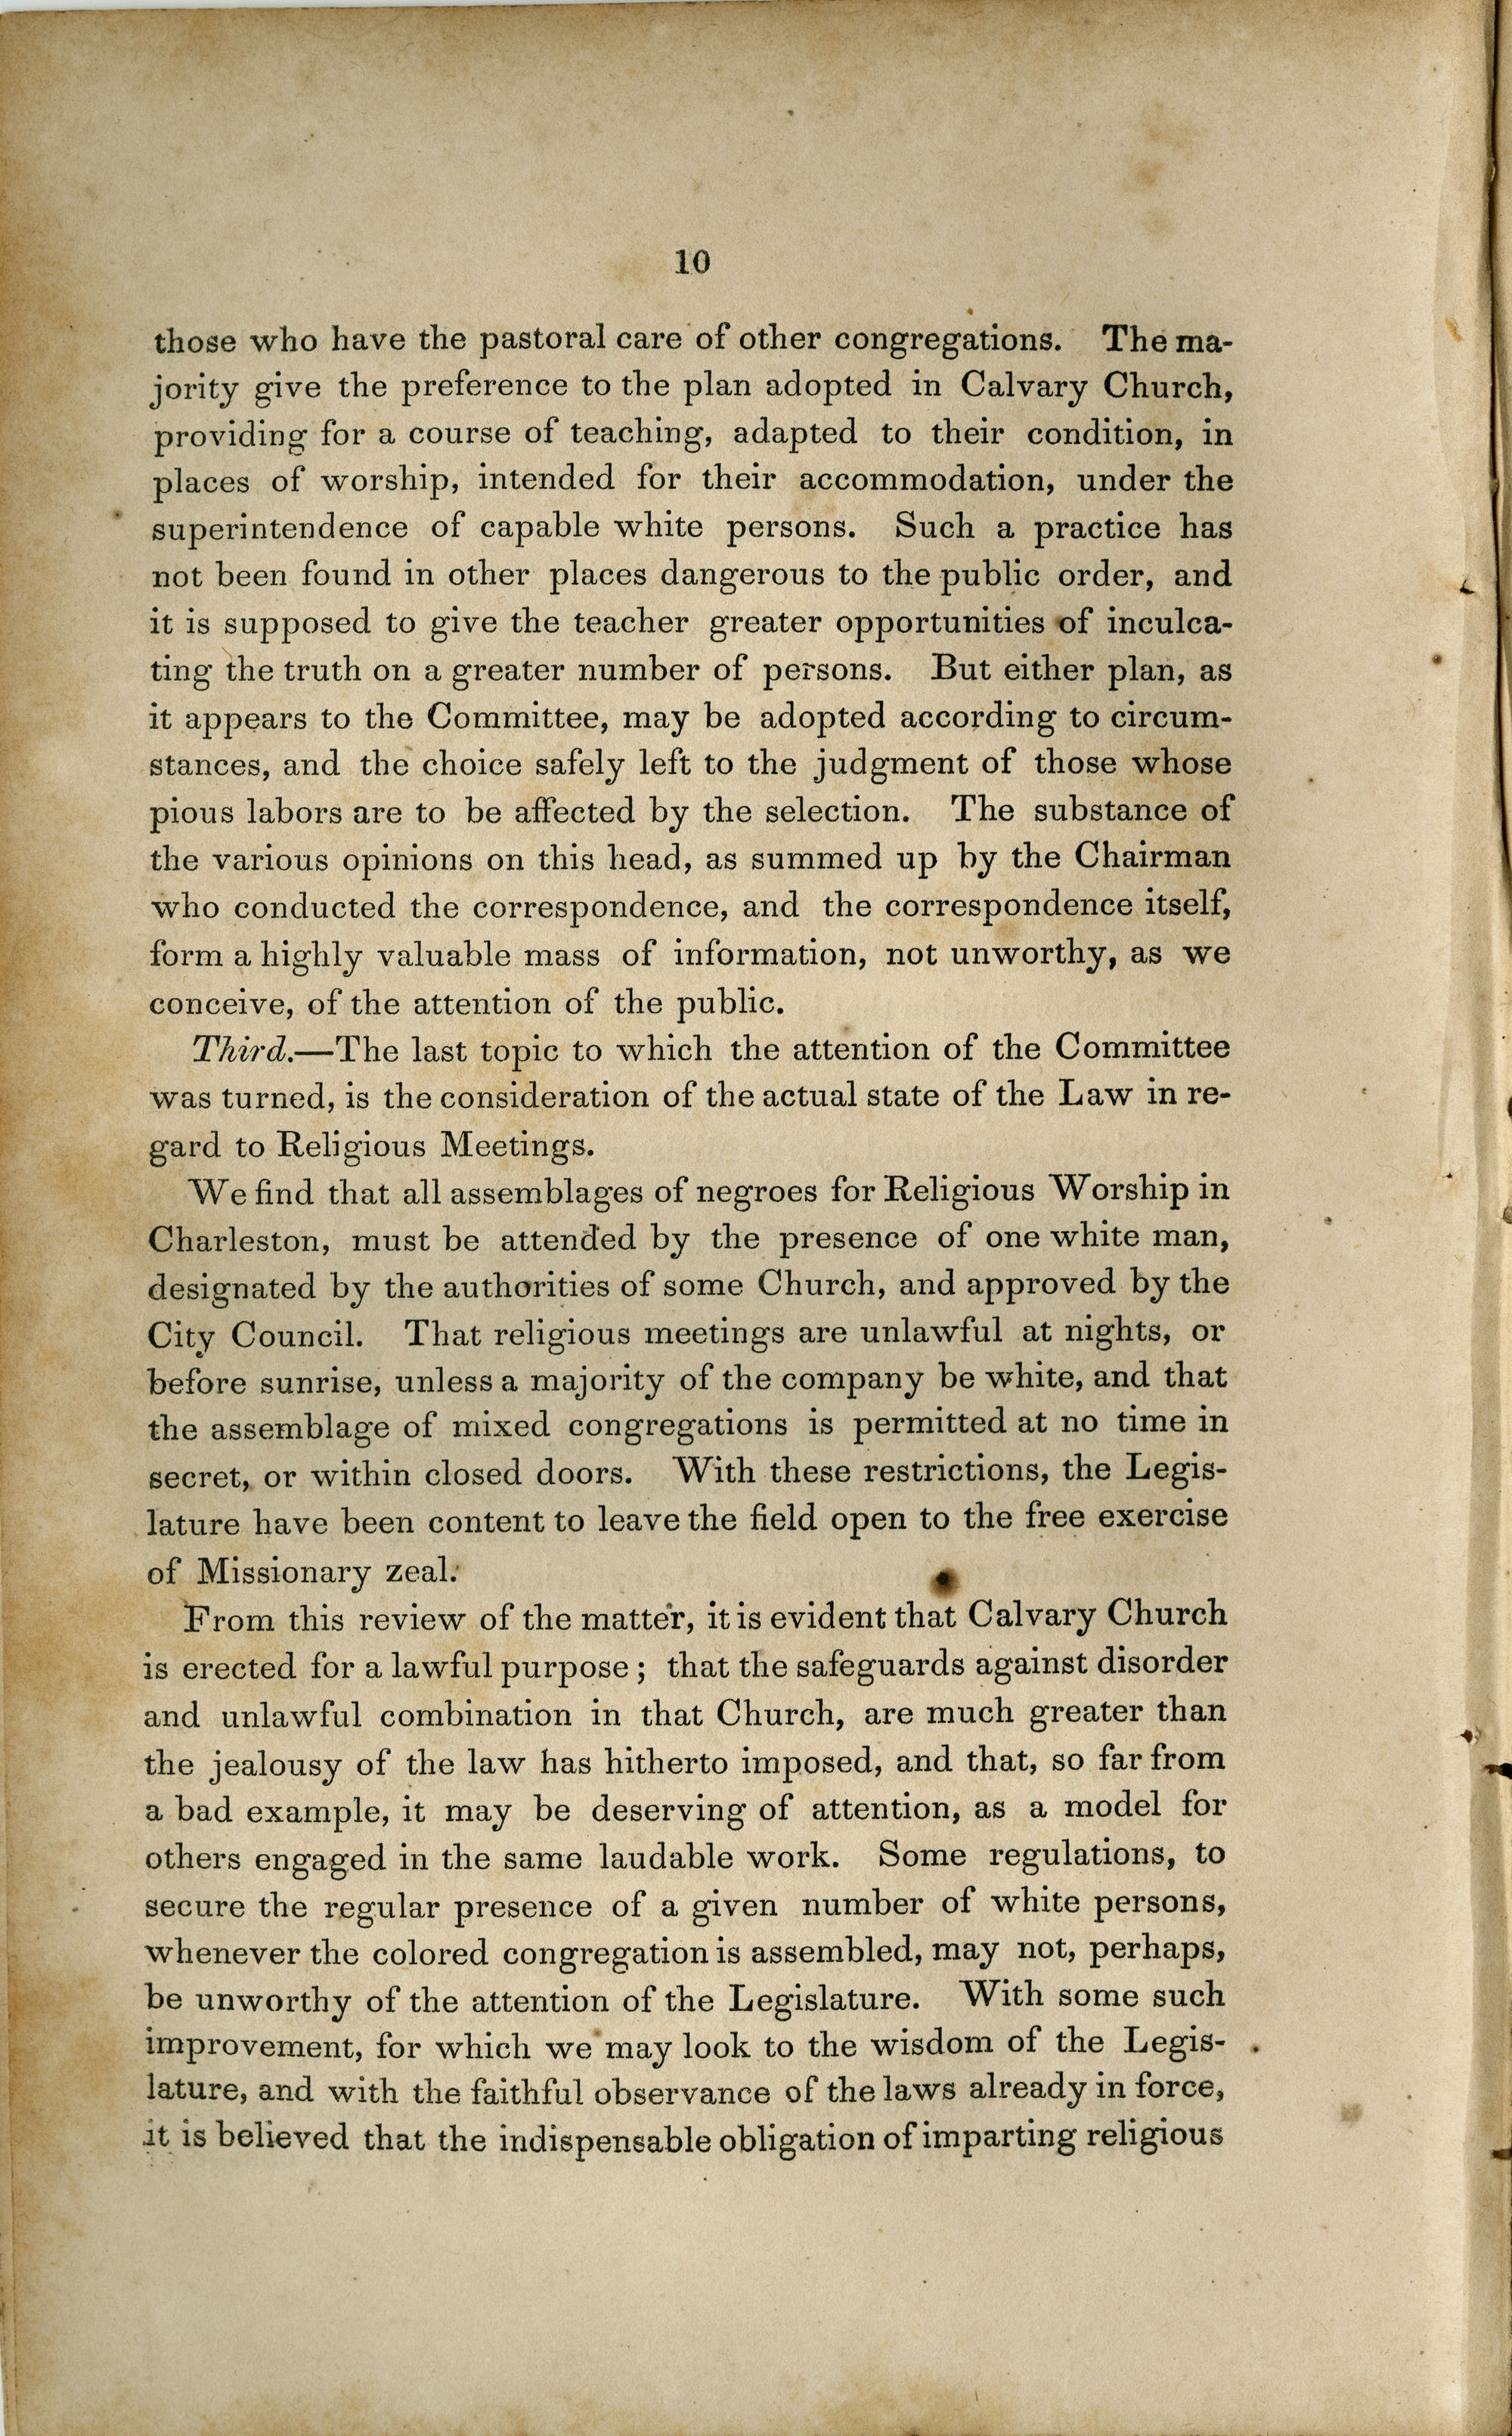 Public Proceedings Relating to Calvary Church, and the Religious Instruction of Slaves. Public Meeting, Page 10